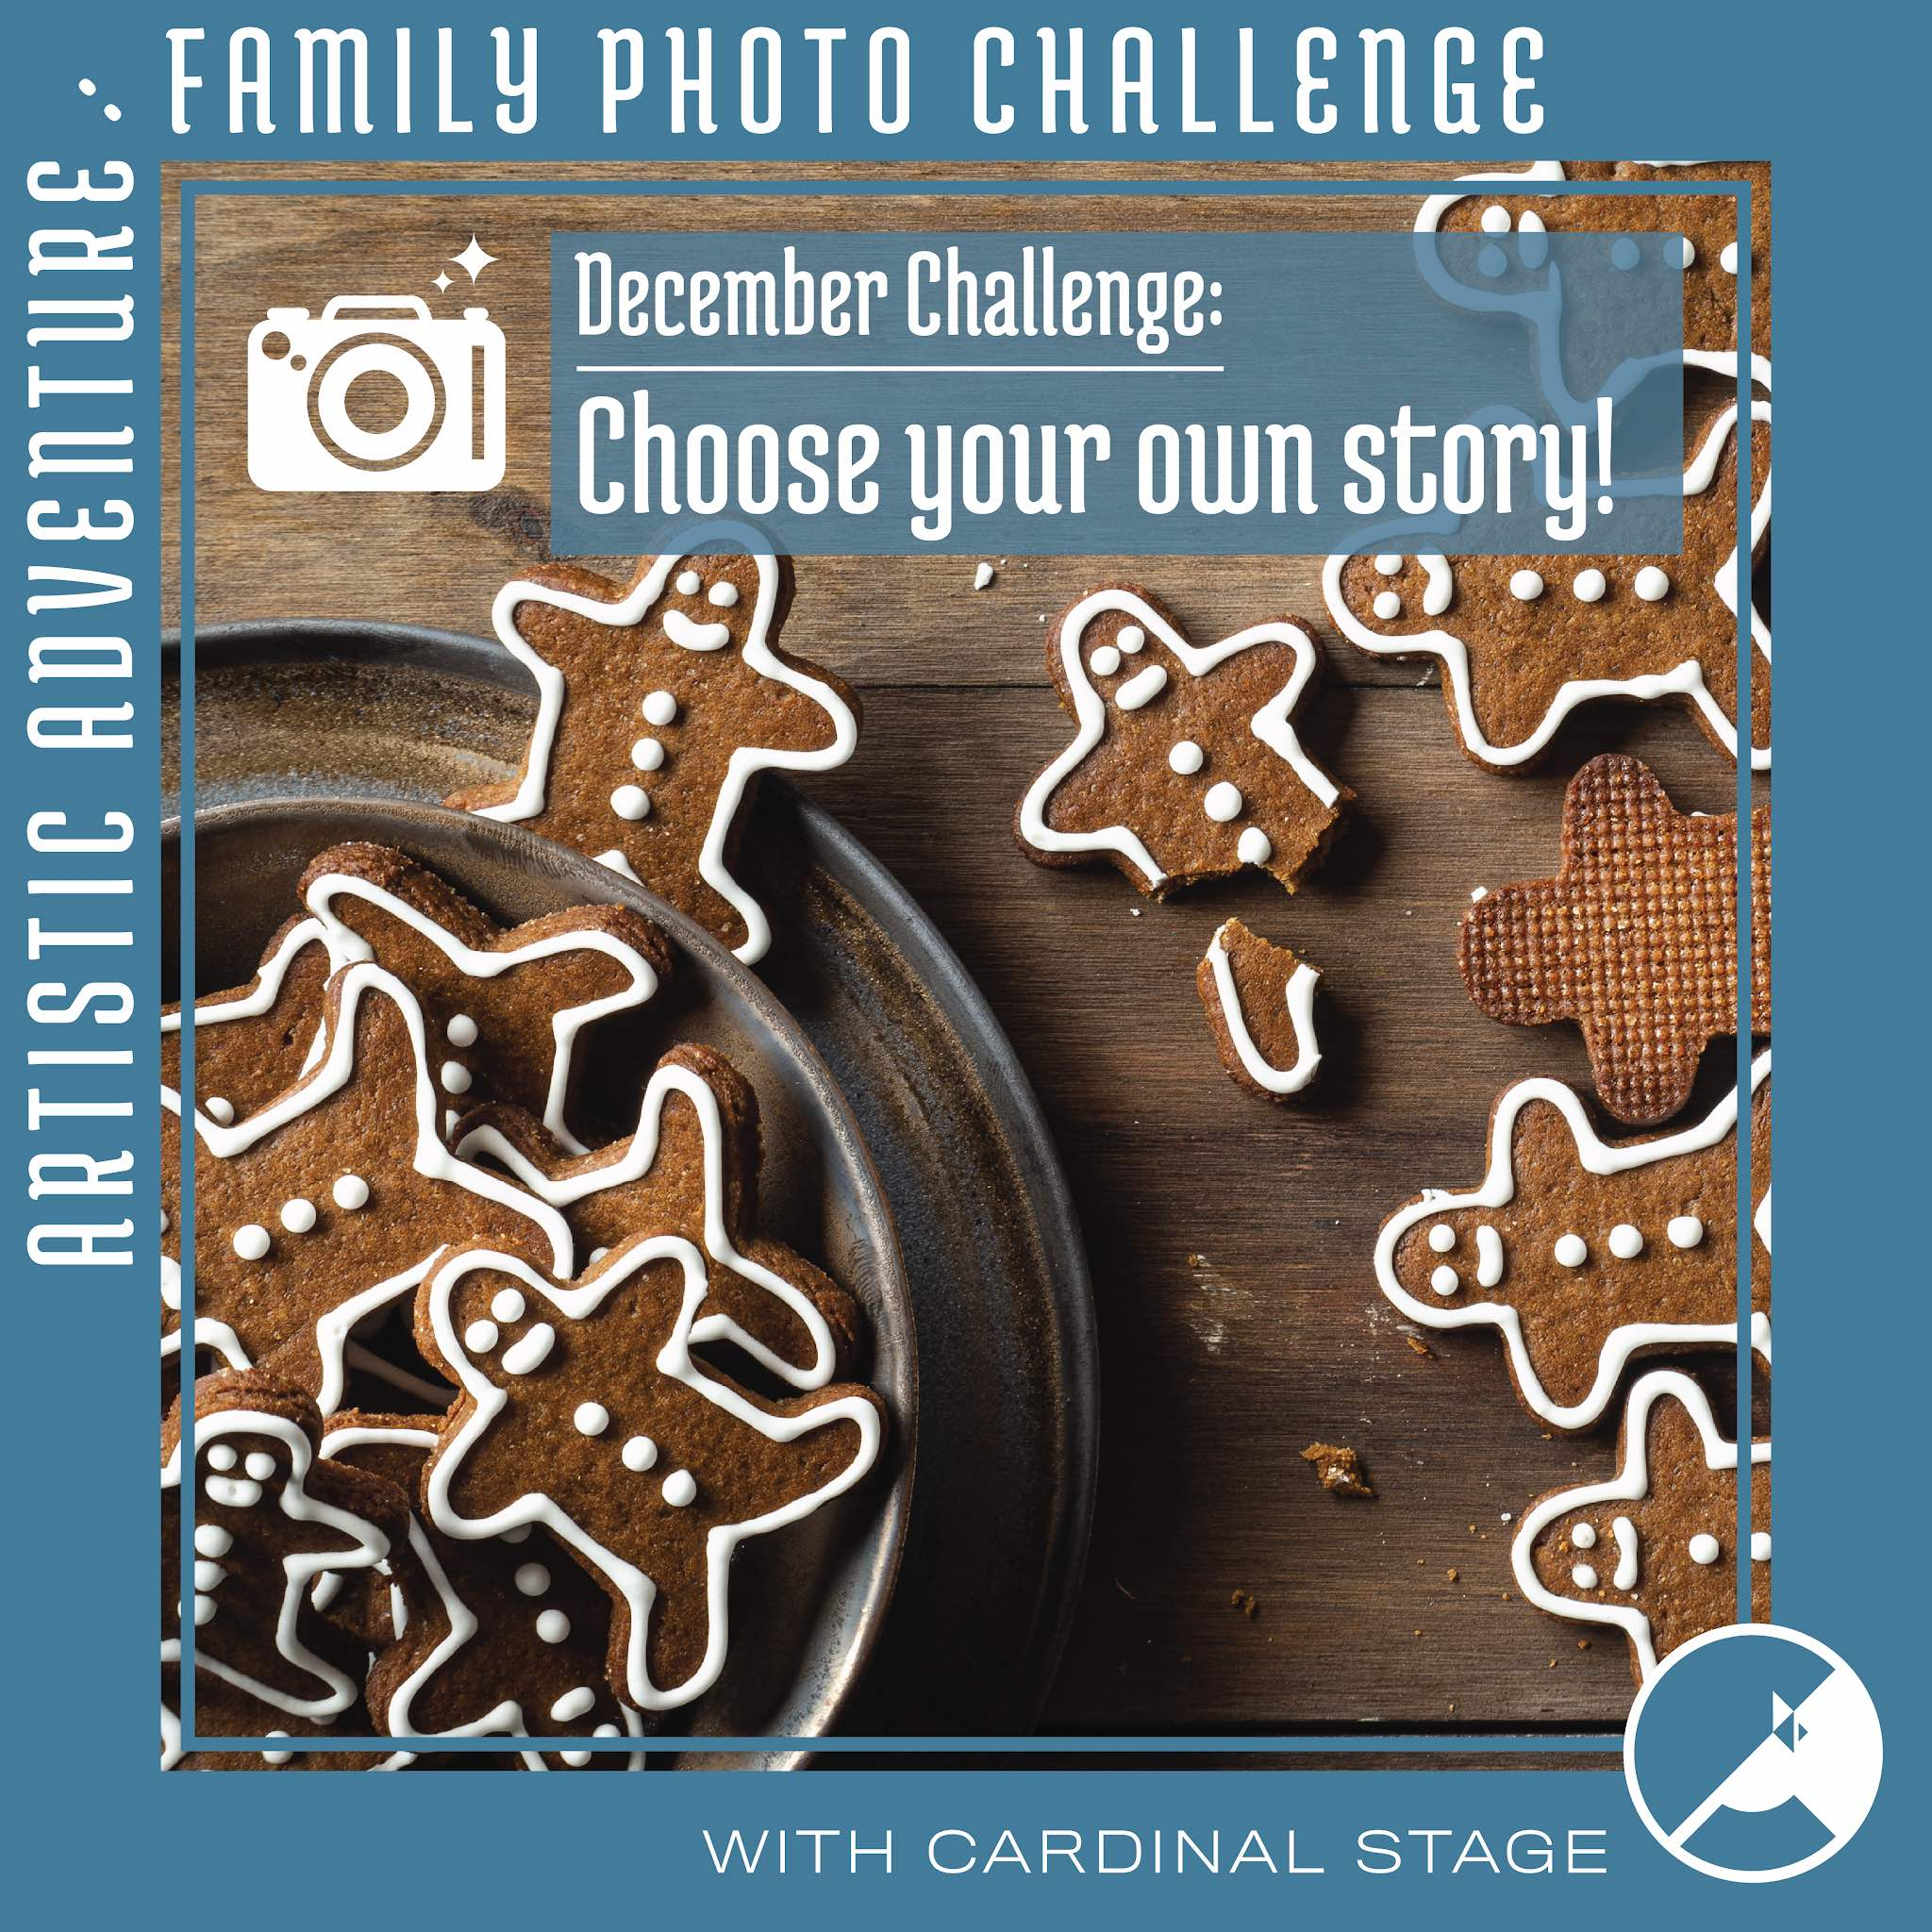 Cardinal Stage Presents: Choose Your Own Story